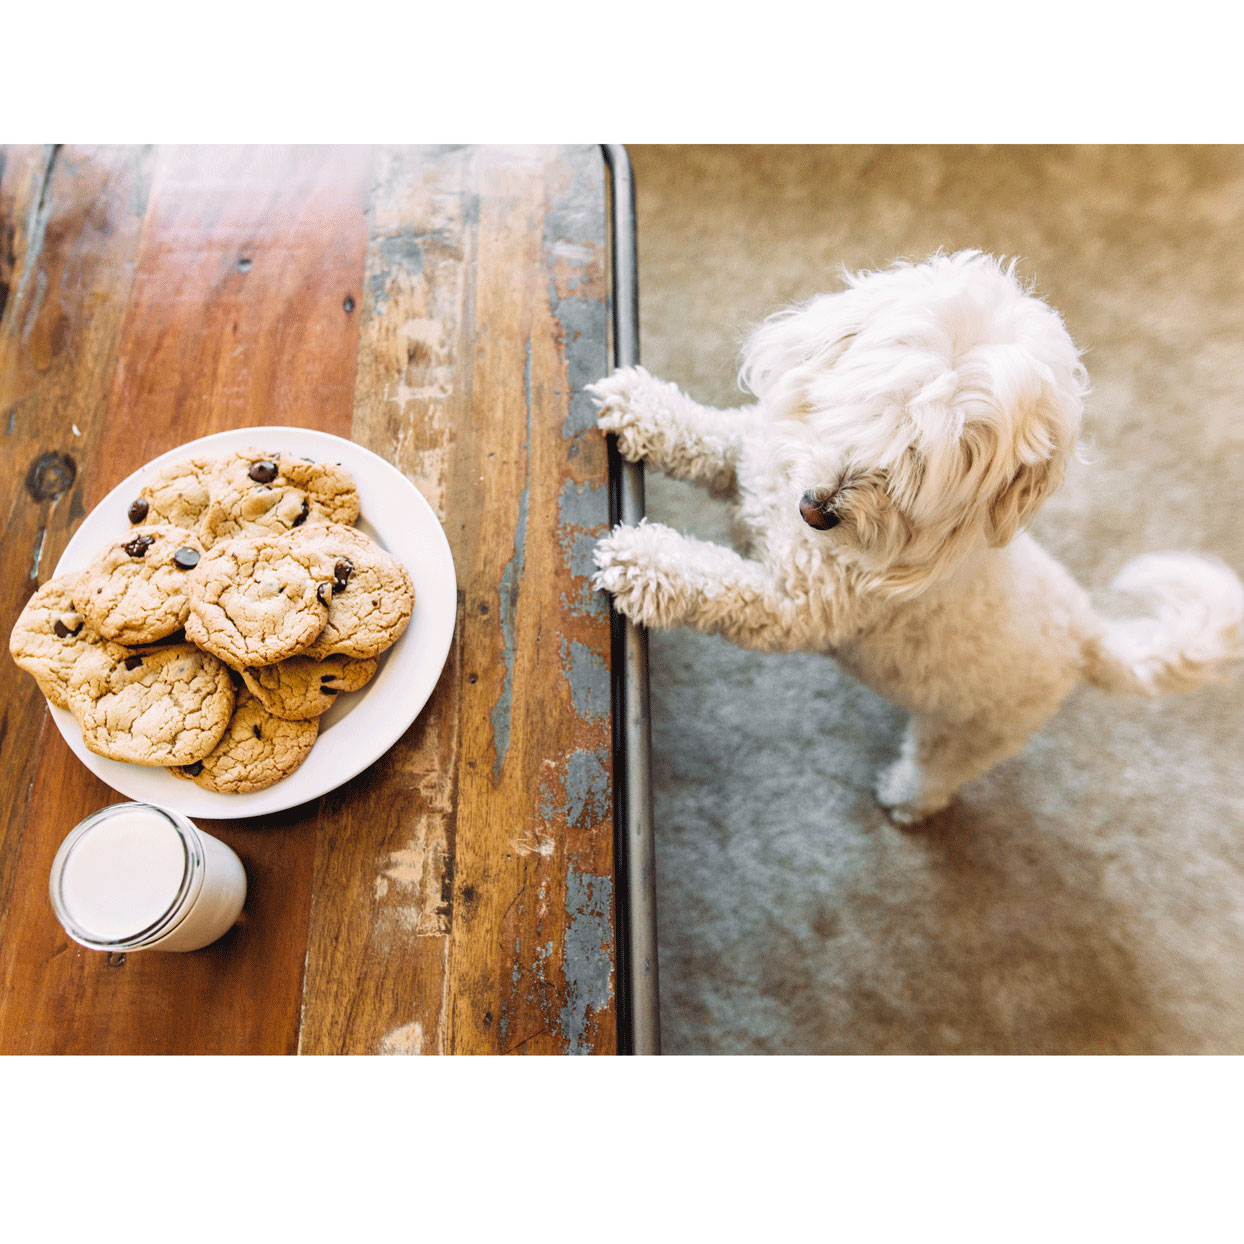 cute dog begging for chocolate chip cookies